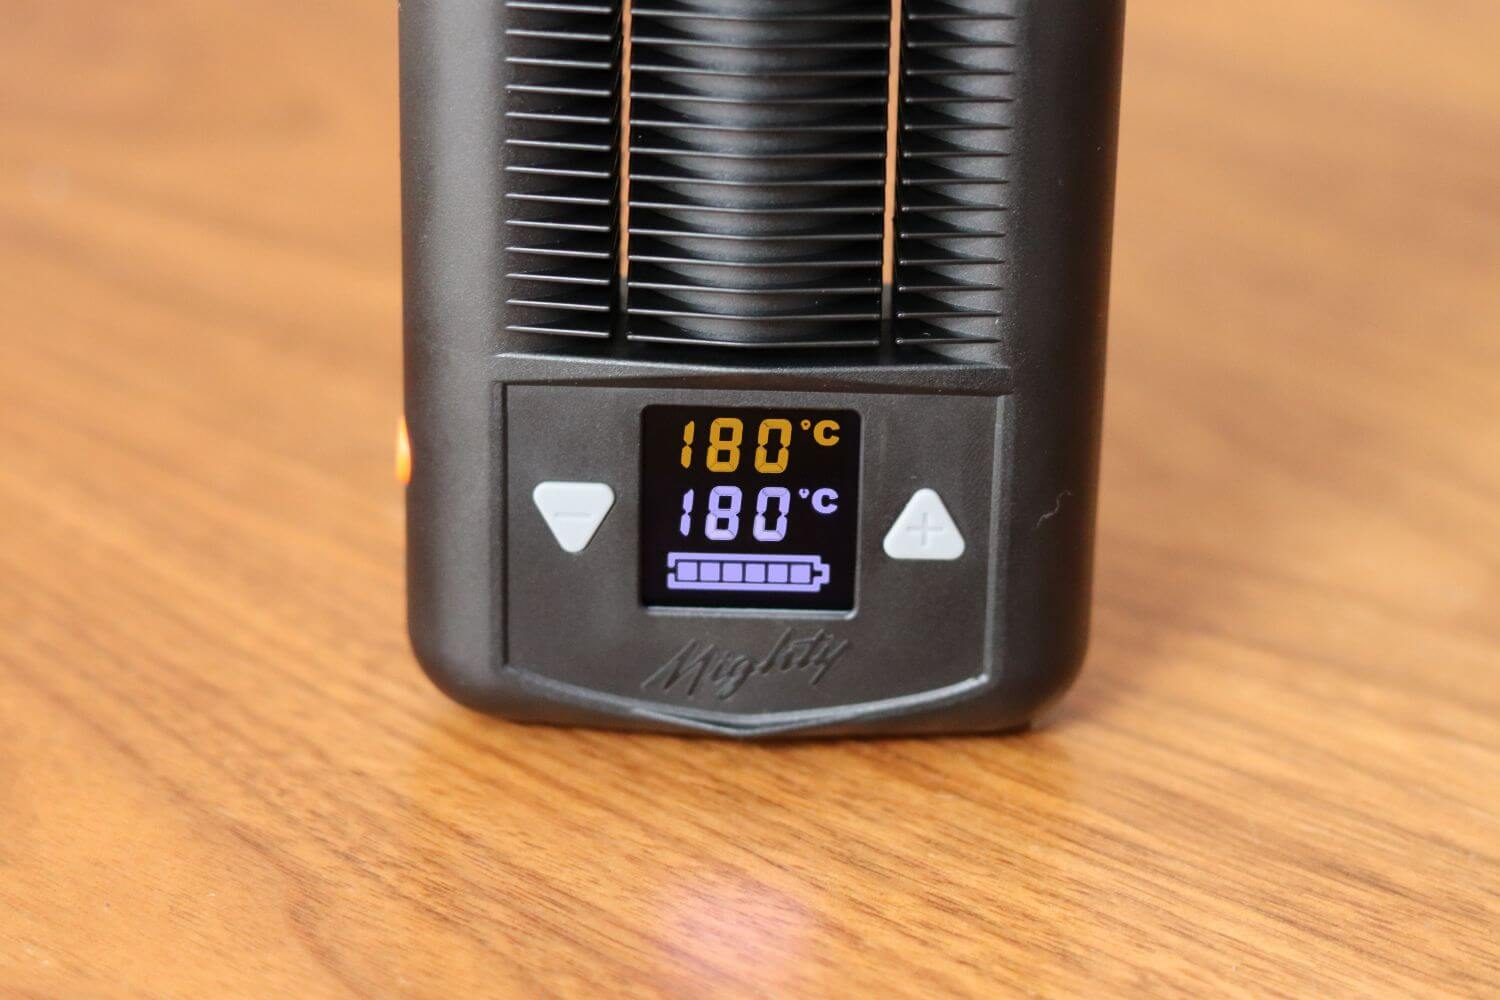 Mighty vaporizer controls